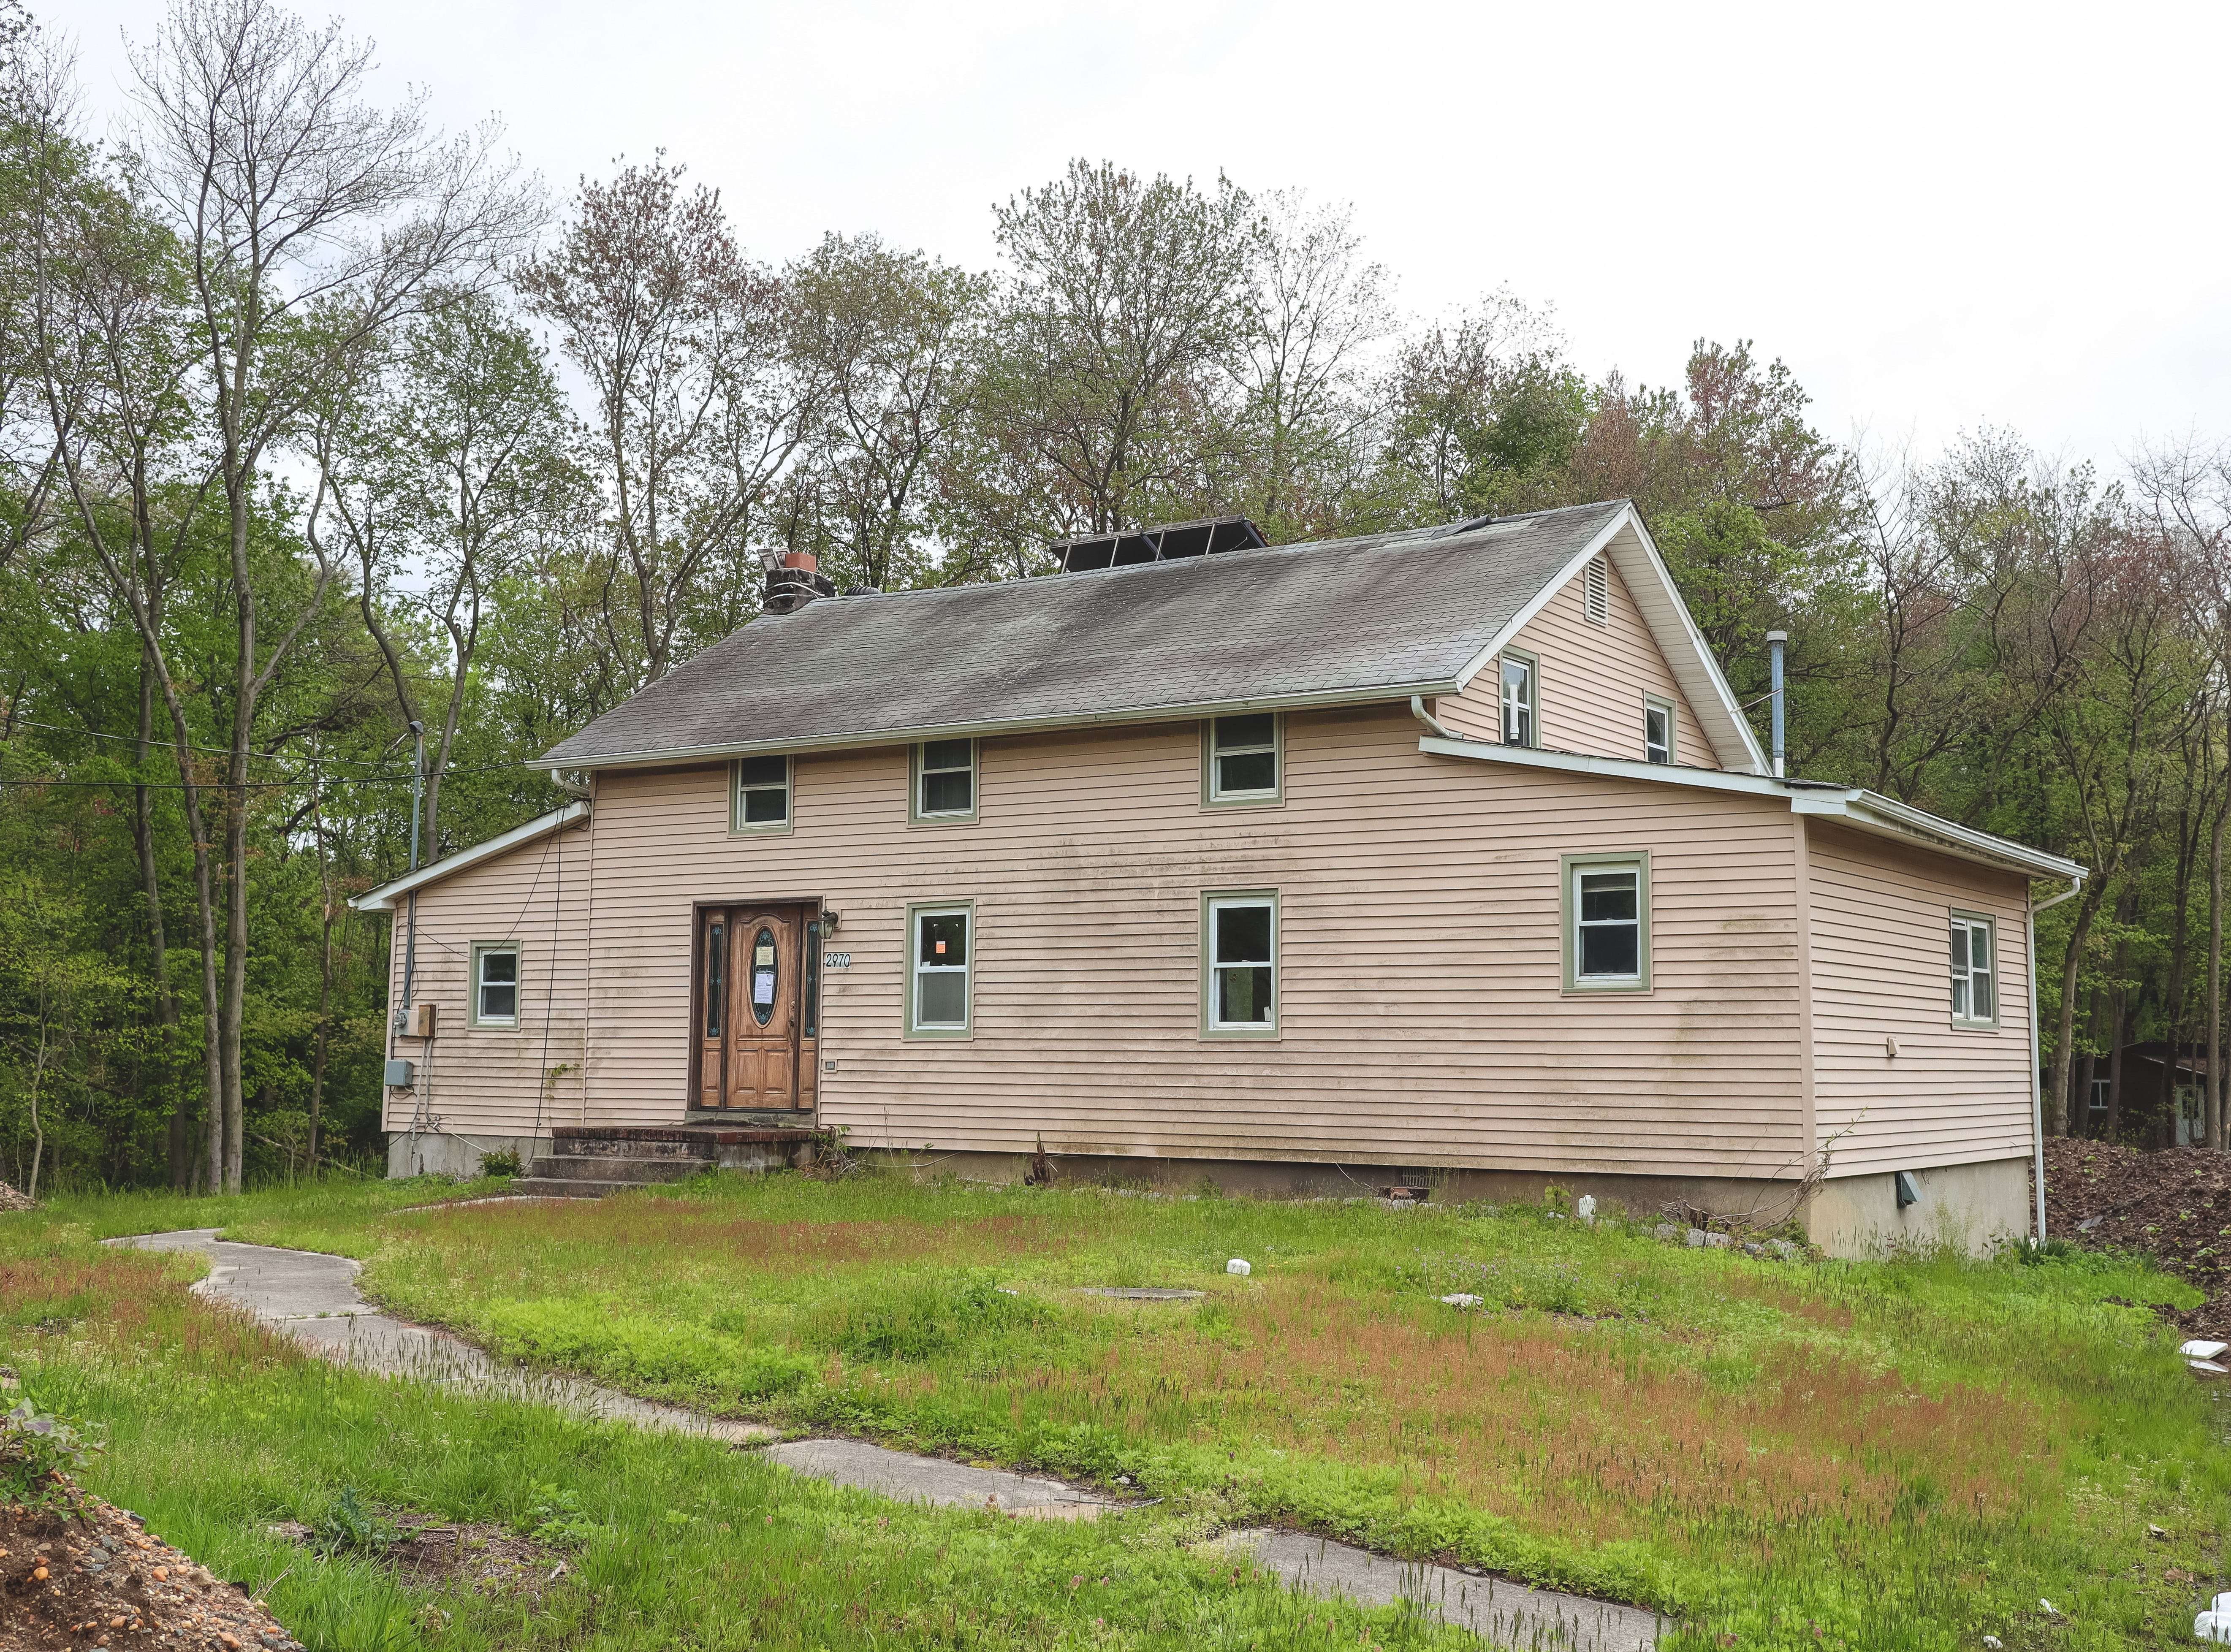 The Theobold family house where it is today at 2978 Shafto Road, Tinton Falls. The house was moved from 2955 Shafto Road for the Monmouth County Reclamation Center in 1991.